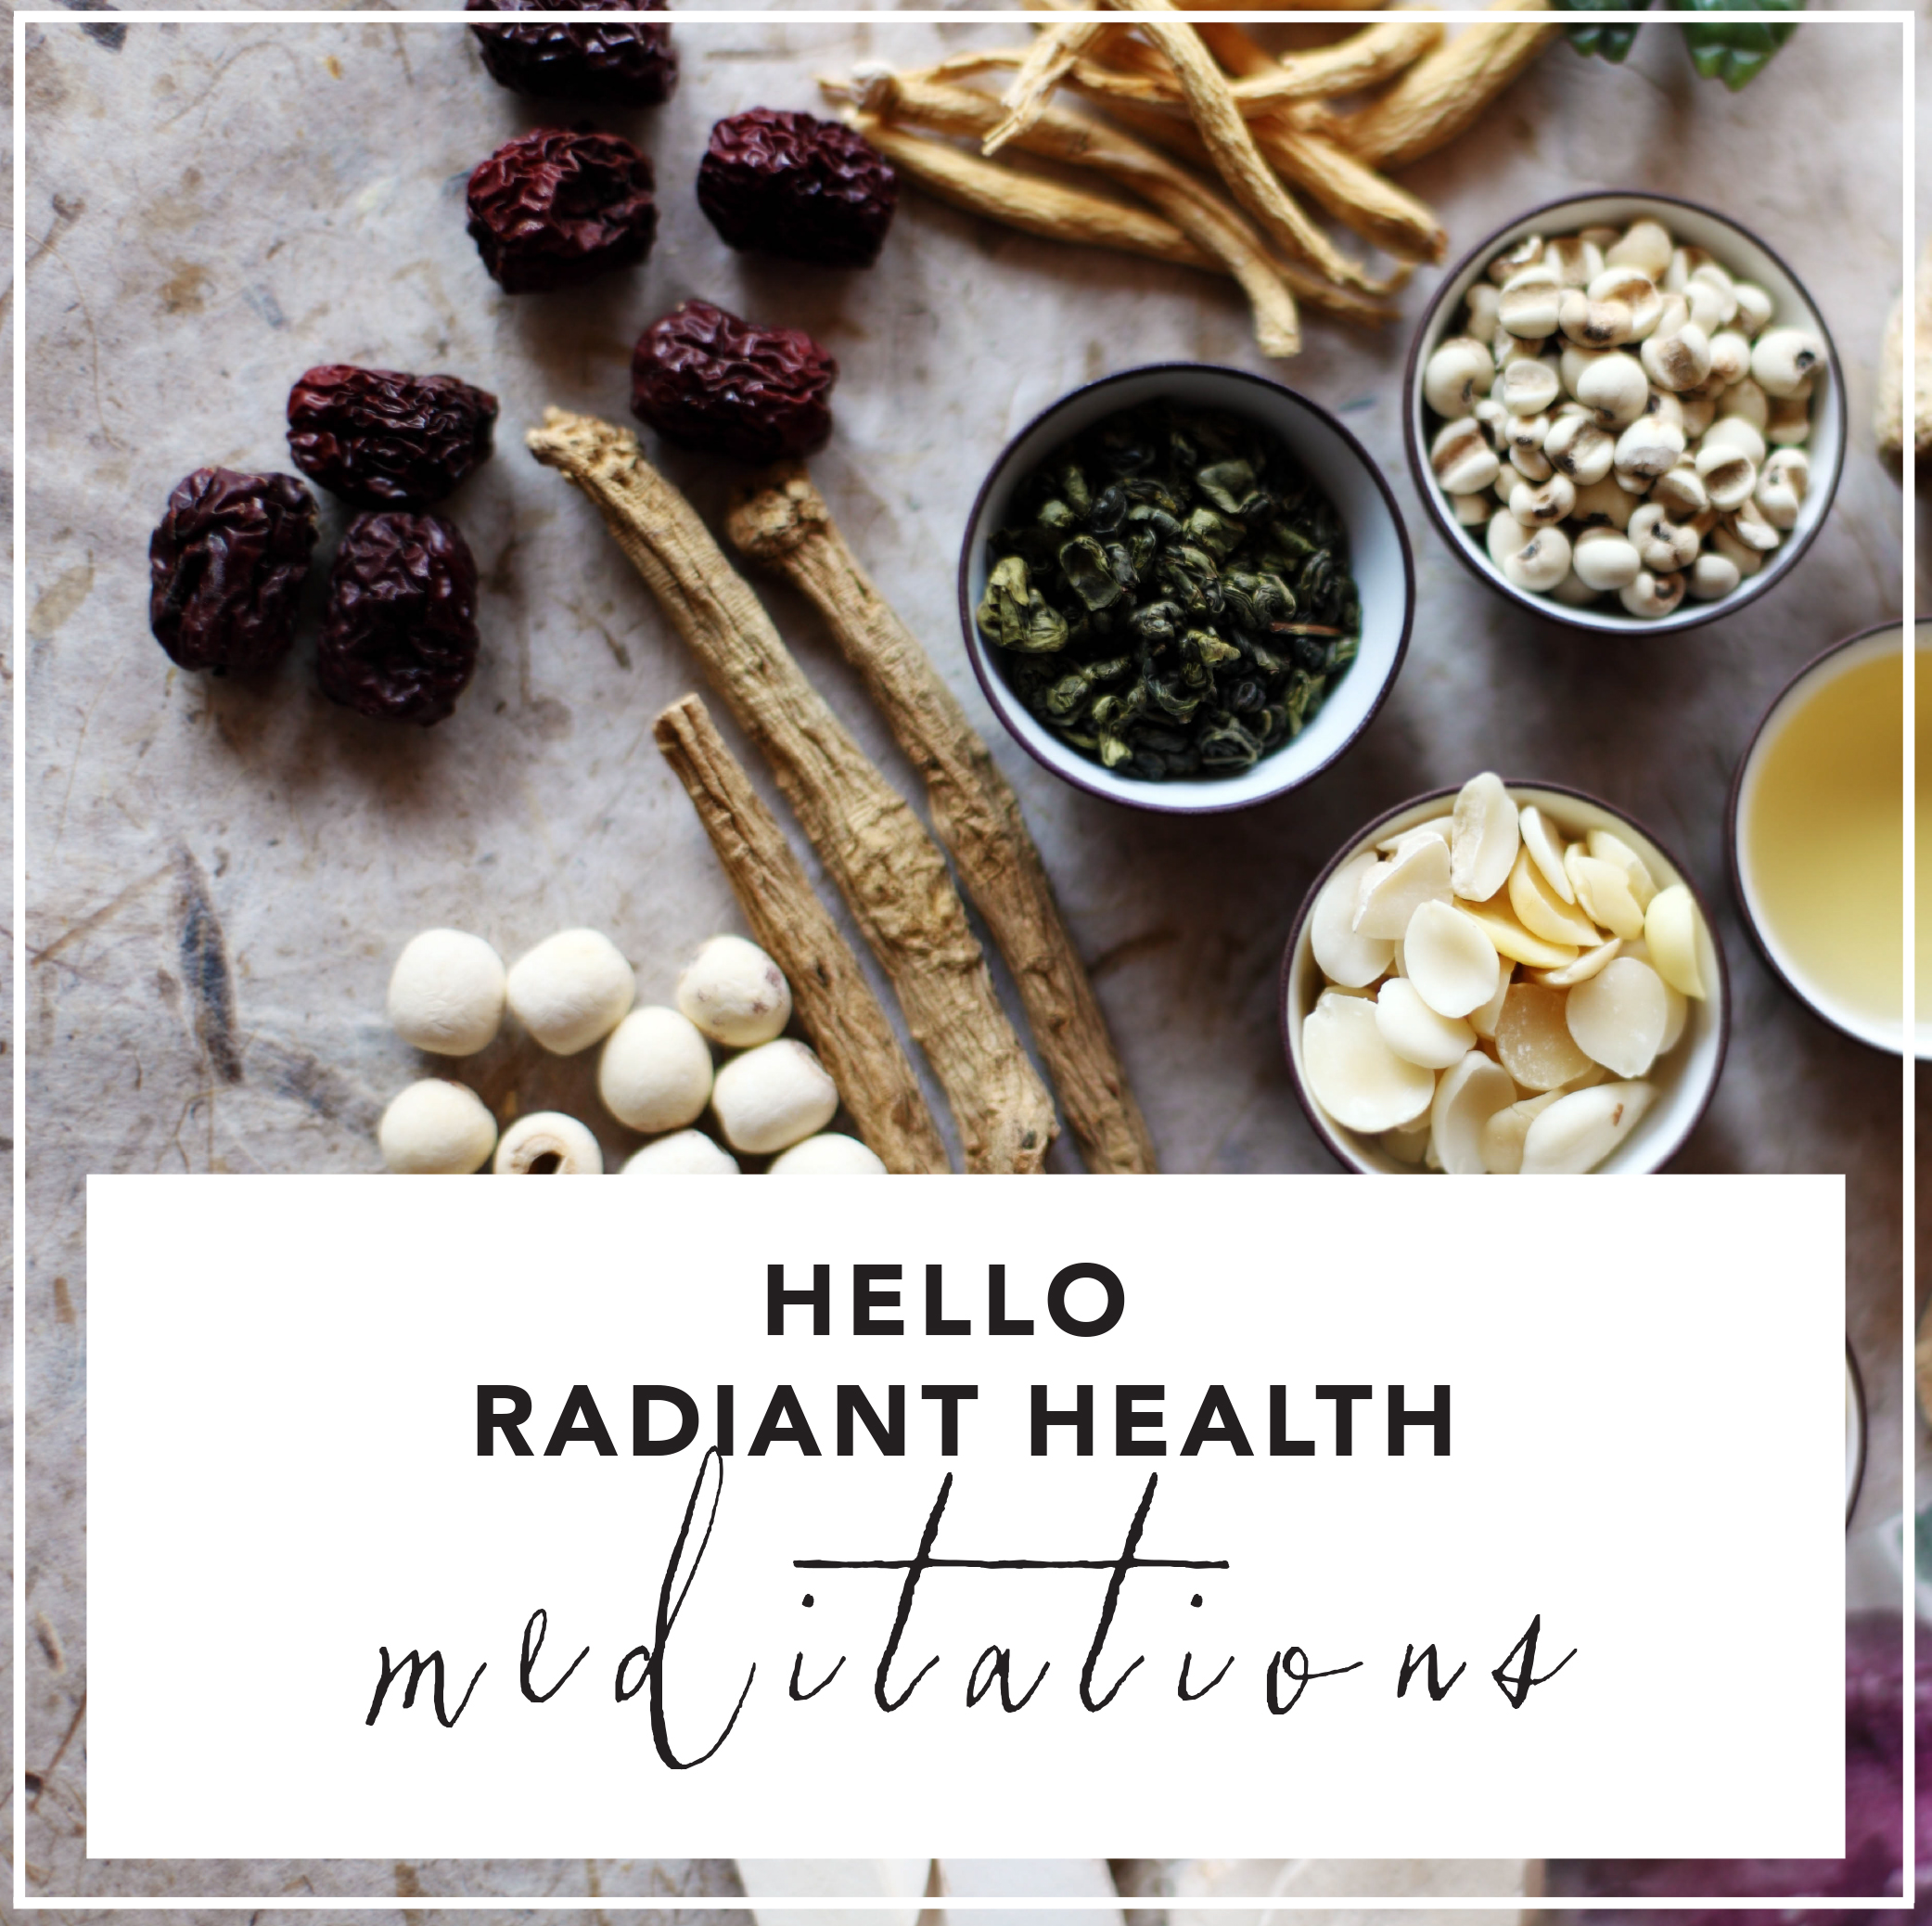 hello radiant health meditations